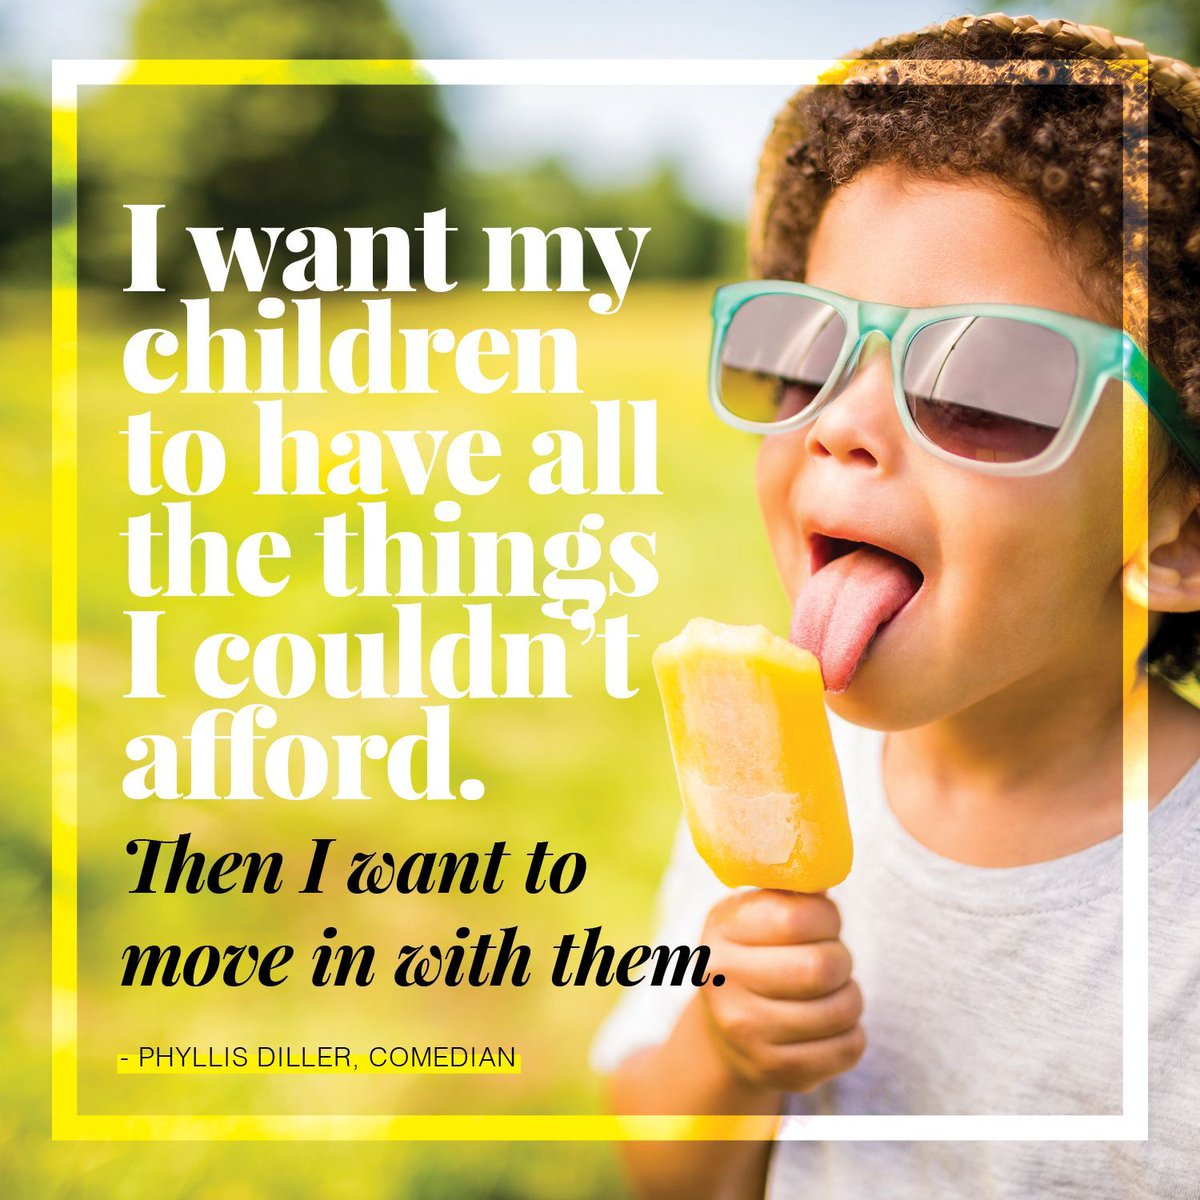 """""""I want my children to have all the things I couldn't afford. Then I want to move in with them."""" — Phyllis Diller, comedian  #quote #ccomedian #children #kids #mom #dad #girlmom #girldad #boymom #boydad #laugh #love #live #blessed #fun #money https://t.co/fP1hxpUodk"""